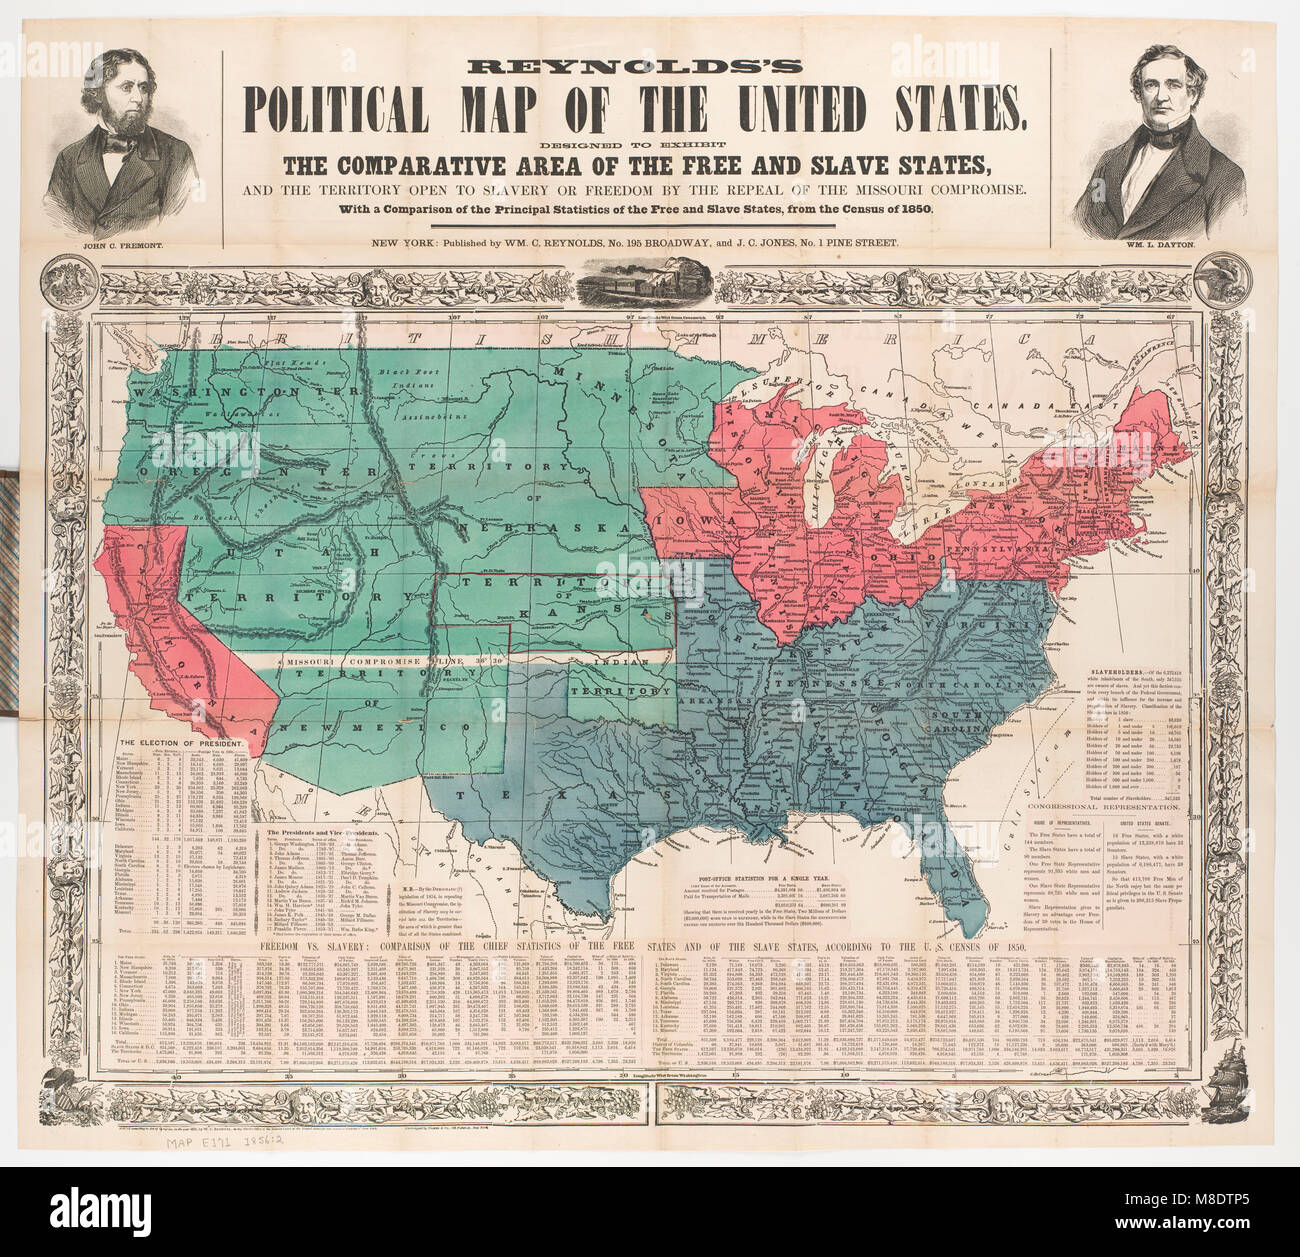 Political Map of the United States, 1856 Stock Photo: 177325741 - Alamy